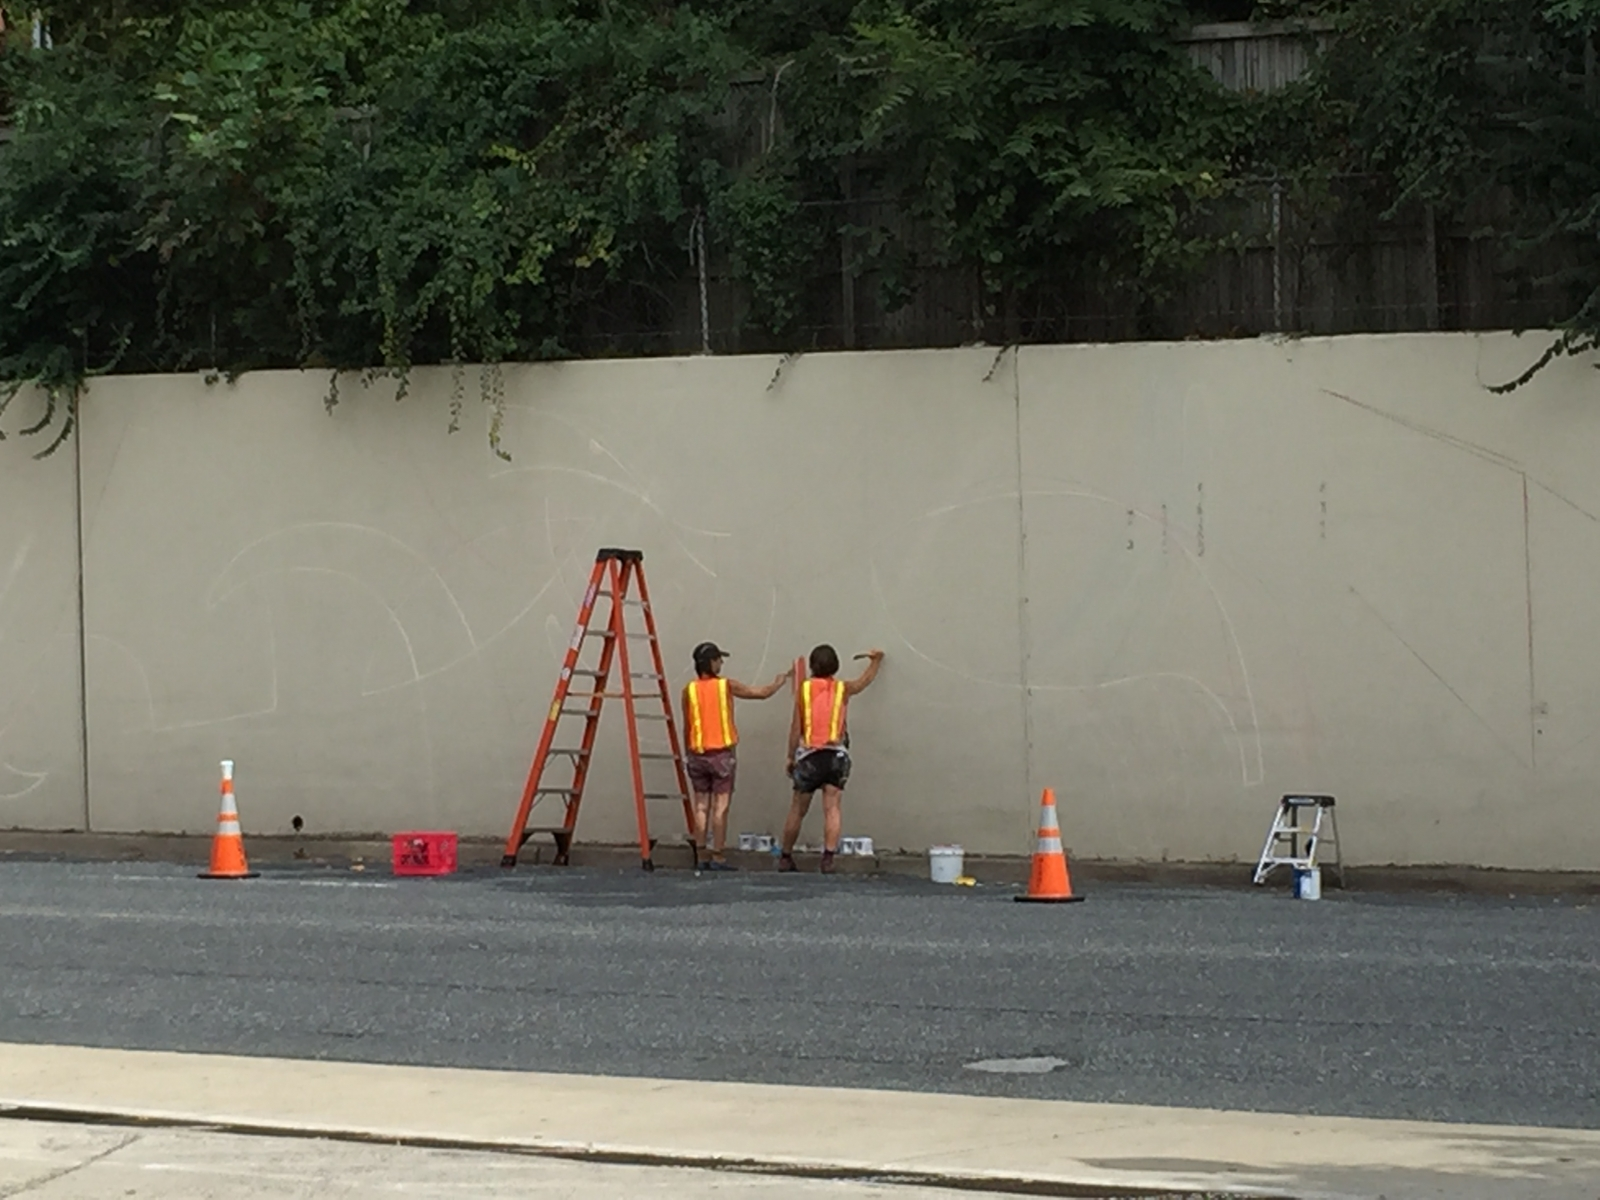 Jessie Unterhalter And Katey Truhn Start Painting A Mural On 400 Foot Long Concrete Wall Along Arlington Road Via Bethesda Urban Partnership